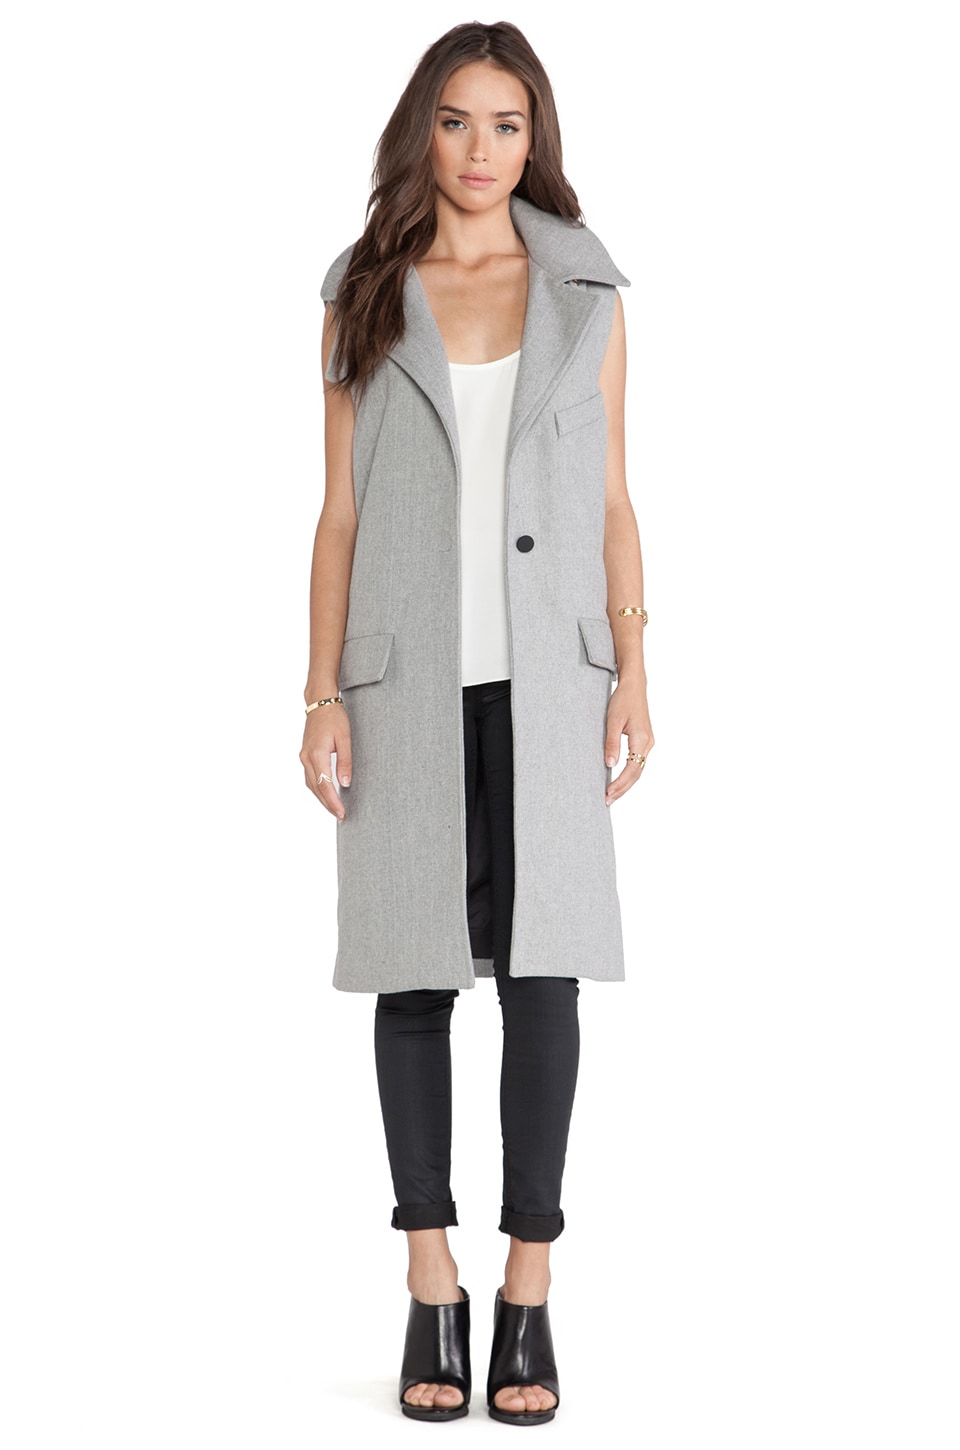 J.O.A. Sleeveless Coat in Grey